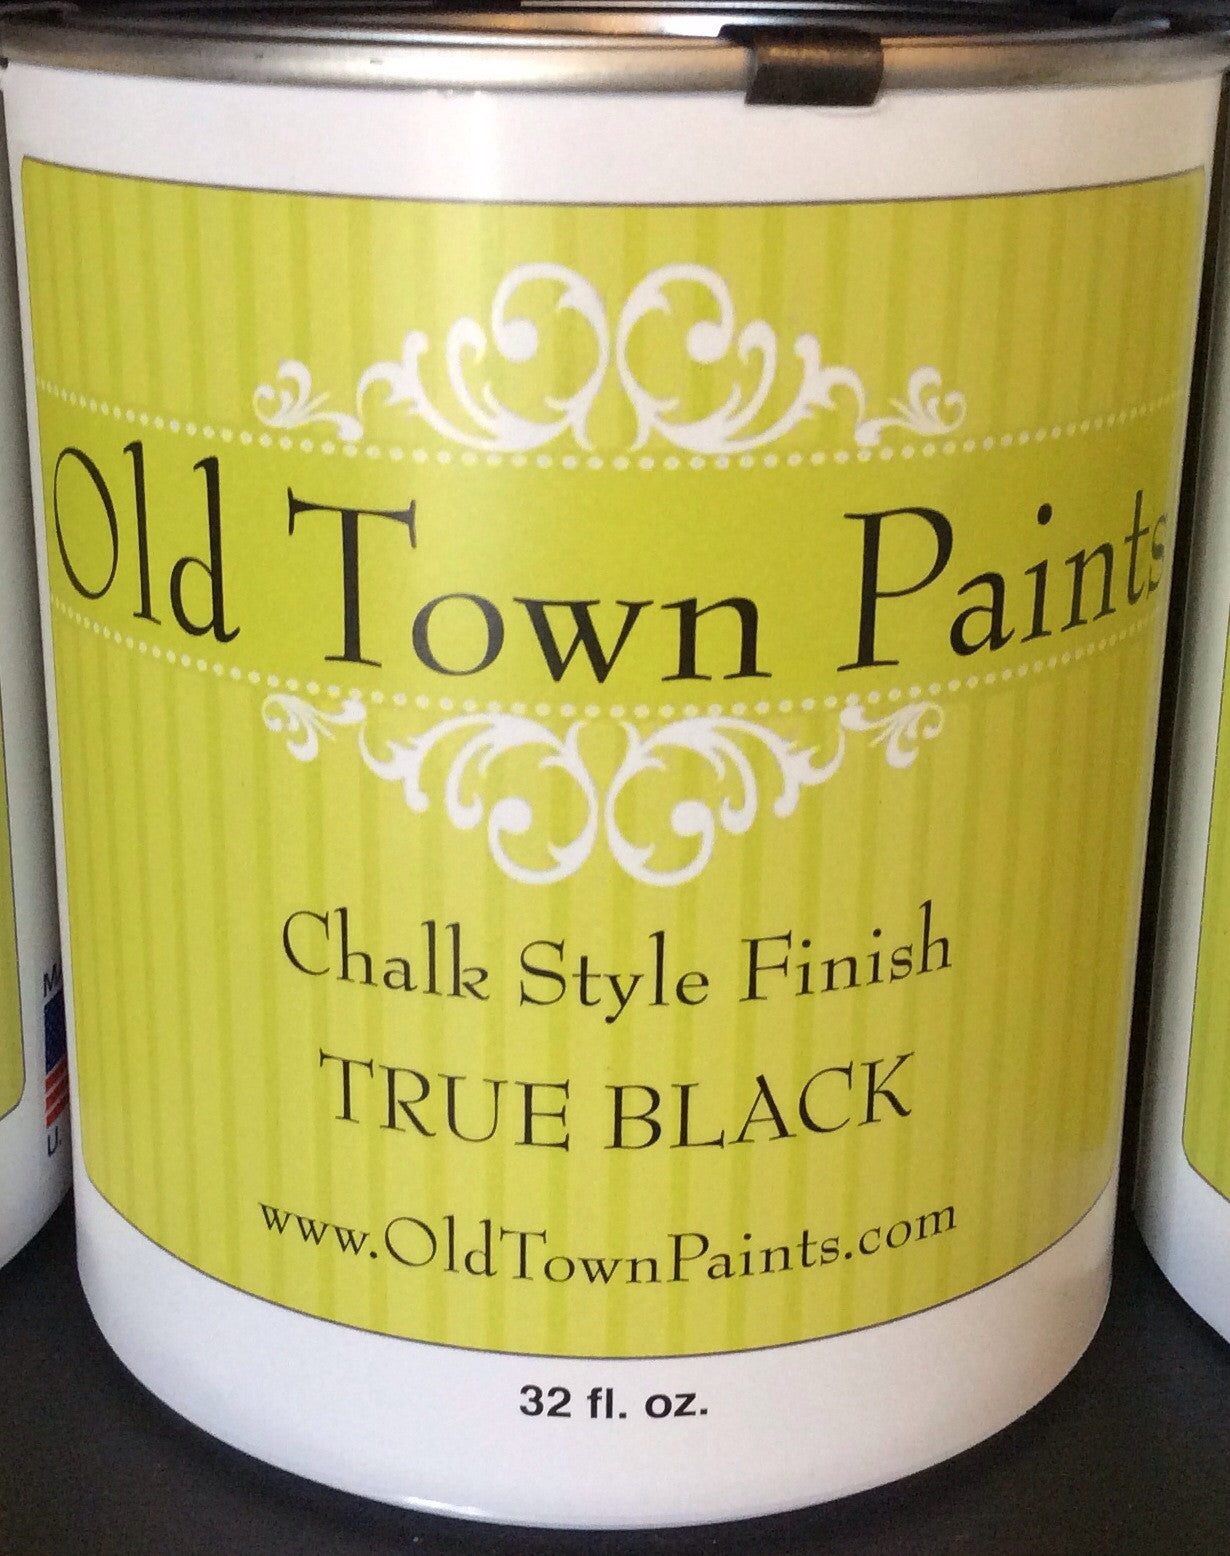 Chalk Style Finish Paint - 32oz - True Black